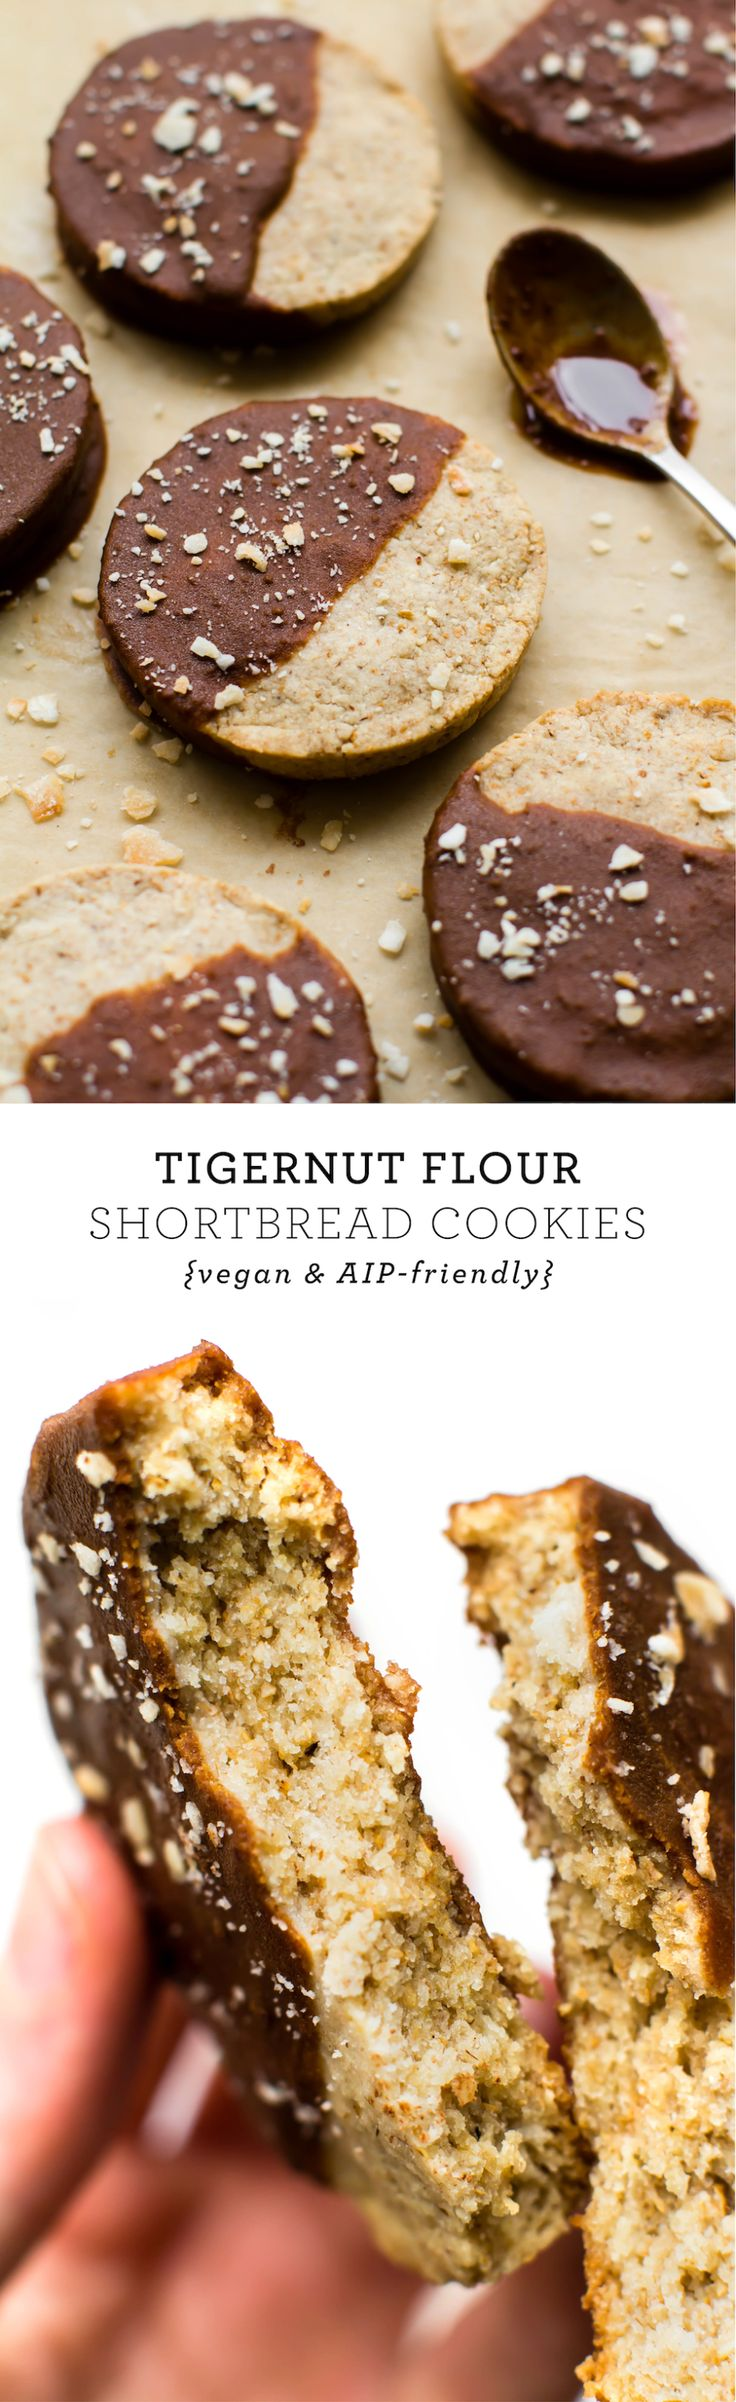 These buttery-sweet Tigernut Flour Shortbread Cookies are grain and nut free plus super simple to make and extra decadent dunked in a silky carob coating!